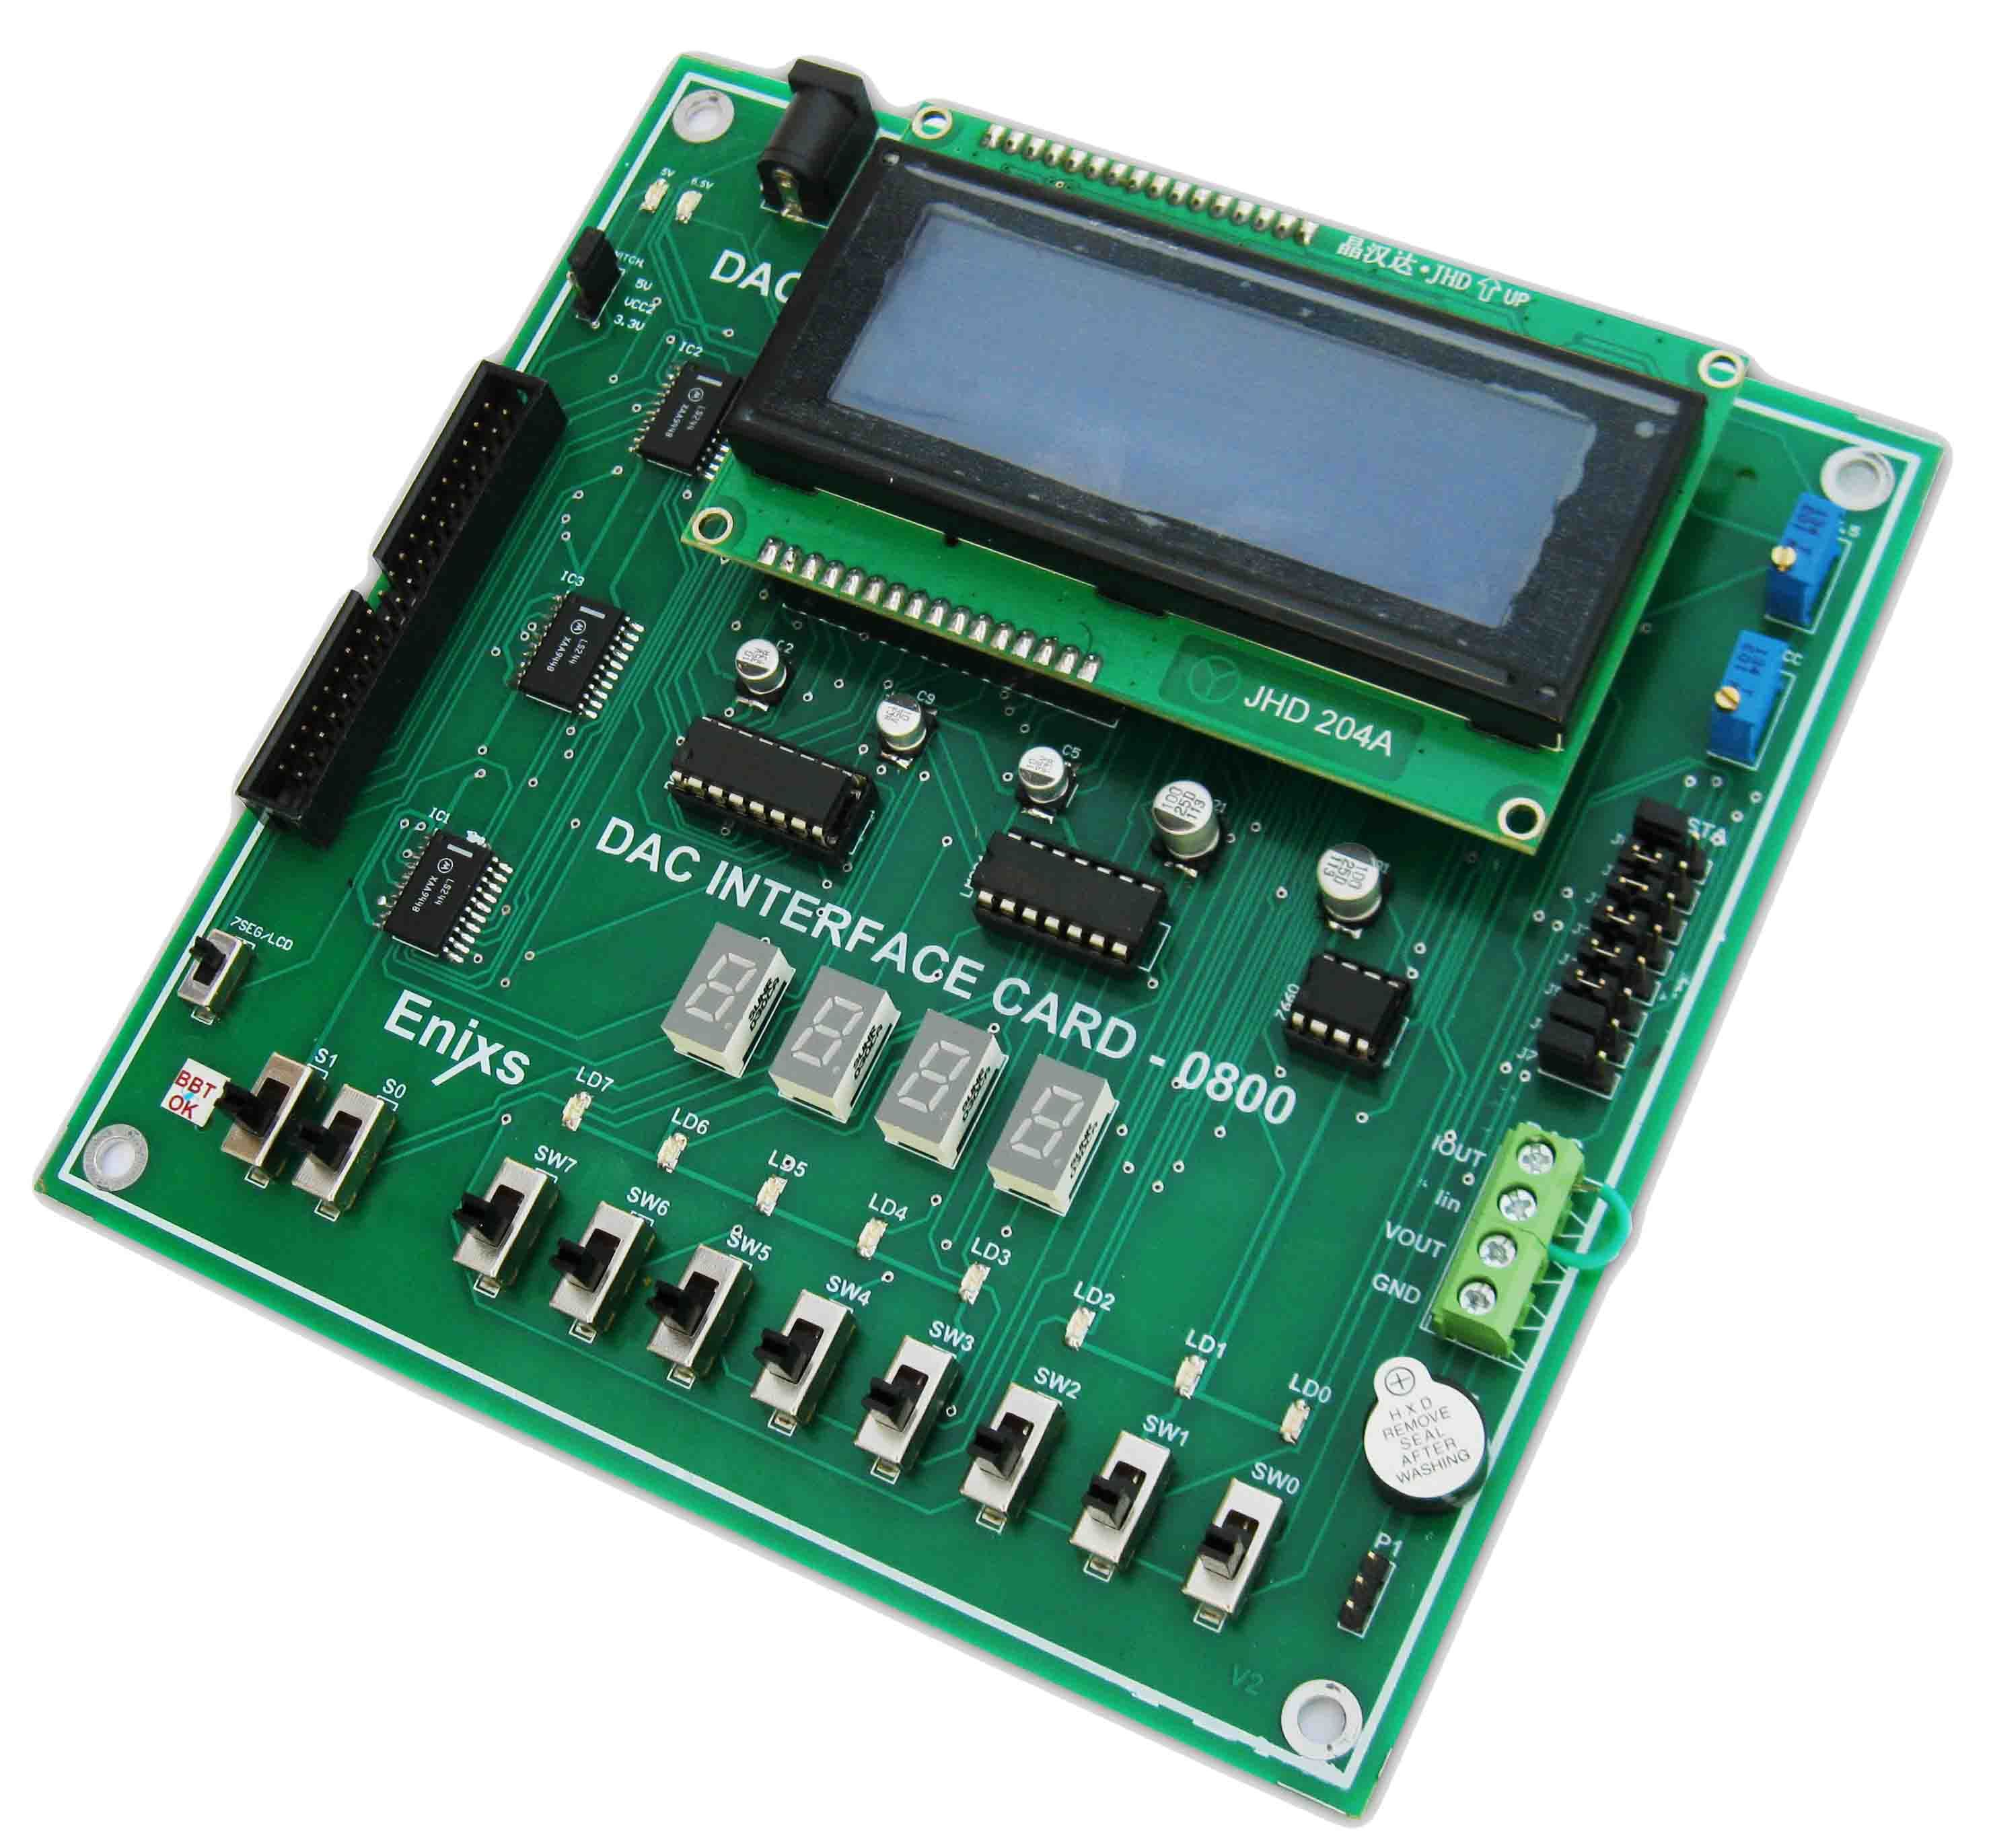 hight resolution of dac0800 interface card the dac interface card is designed to demonstrate the digital to analog conversion using dac 0800 chip